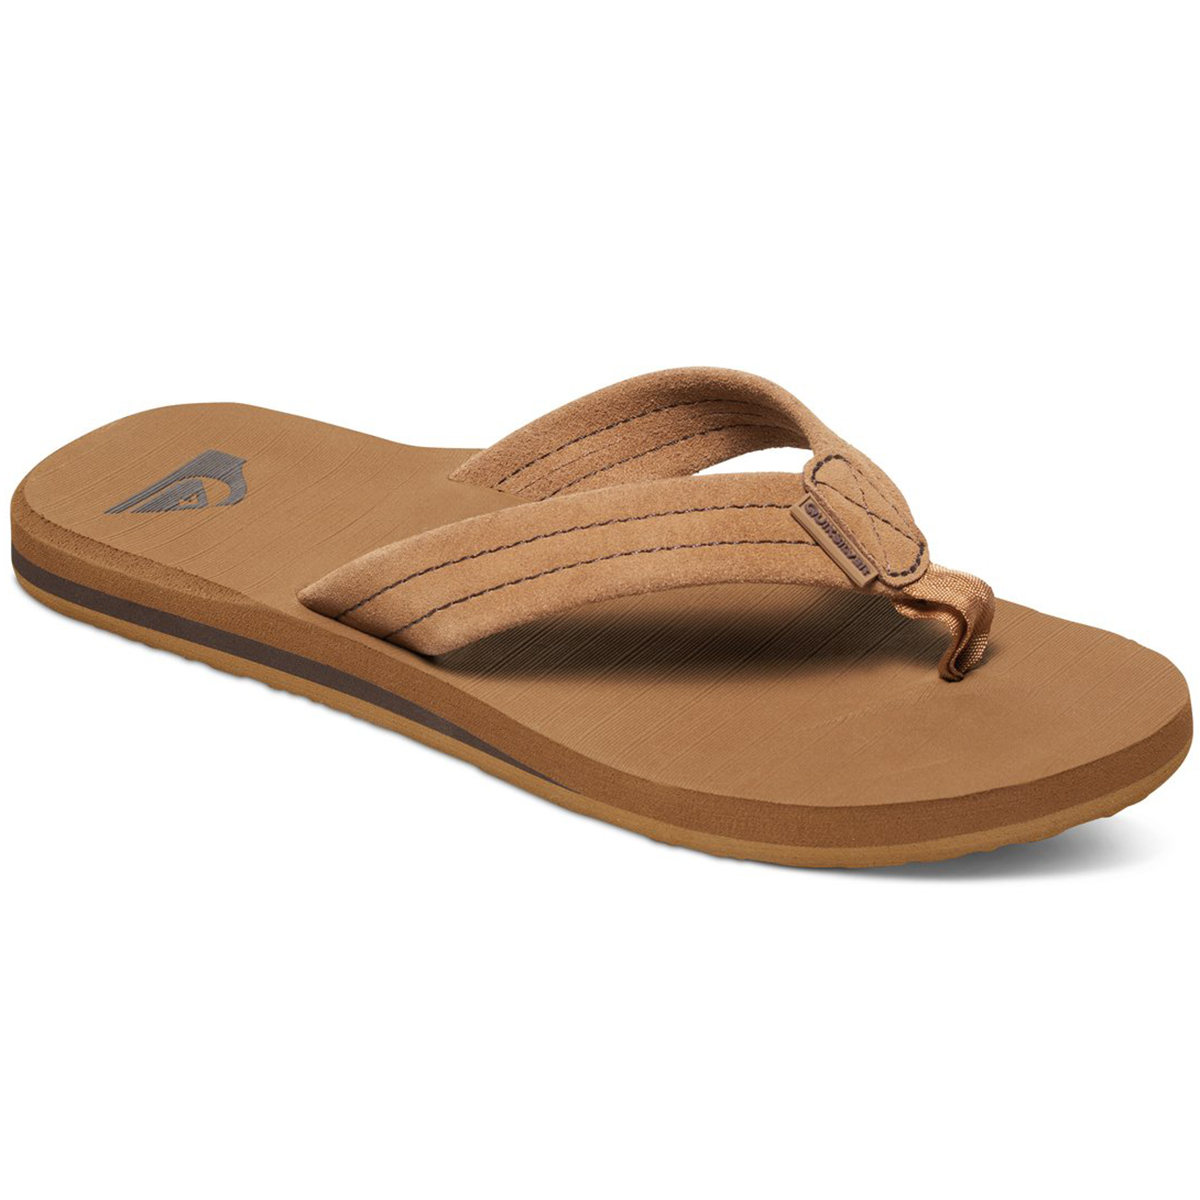 Quiksilver Men's Carver Suede Sandals - Brown, 8